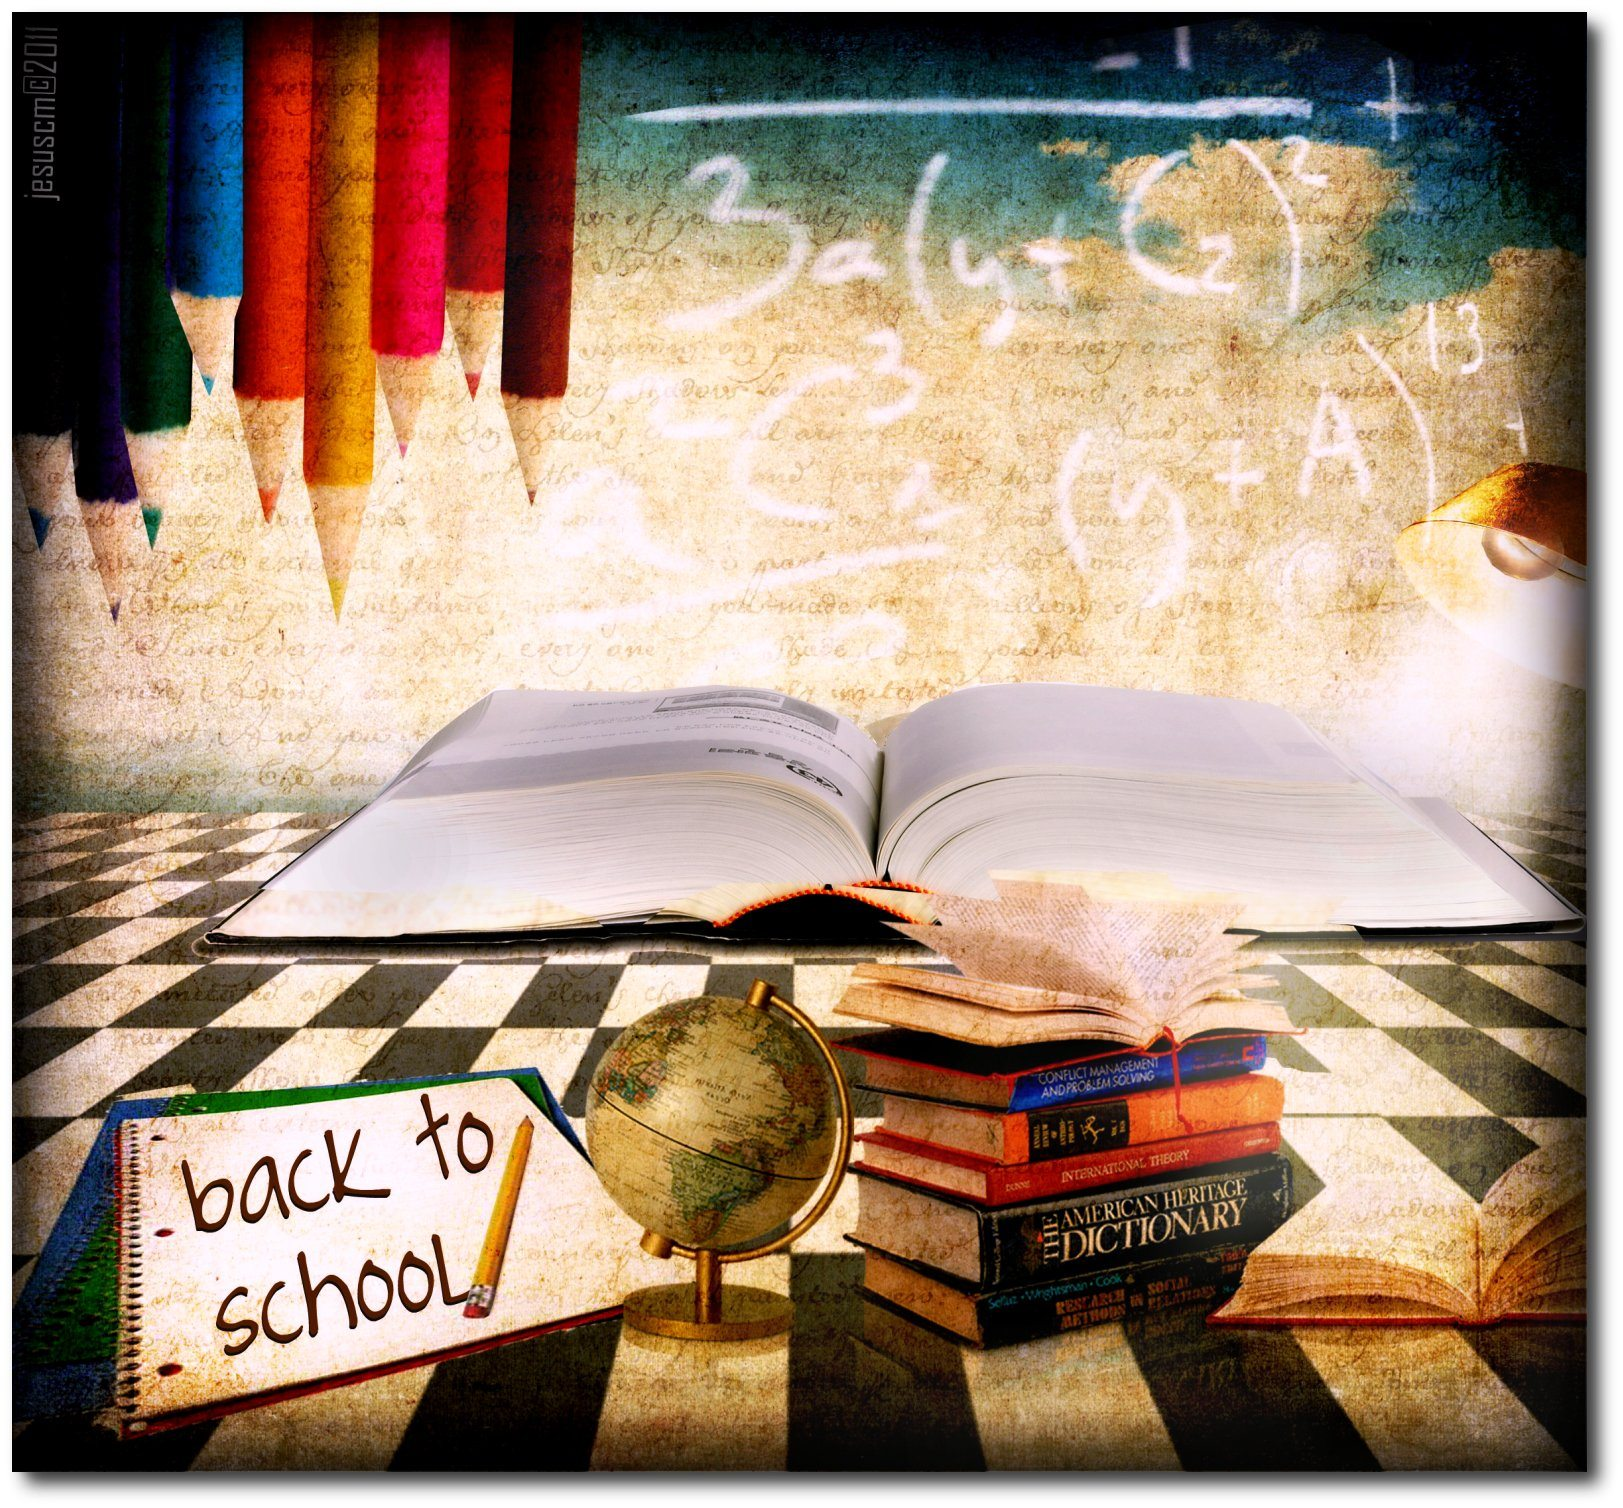 Back to School  Image: flickr user Jesuscm some rights reserved